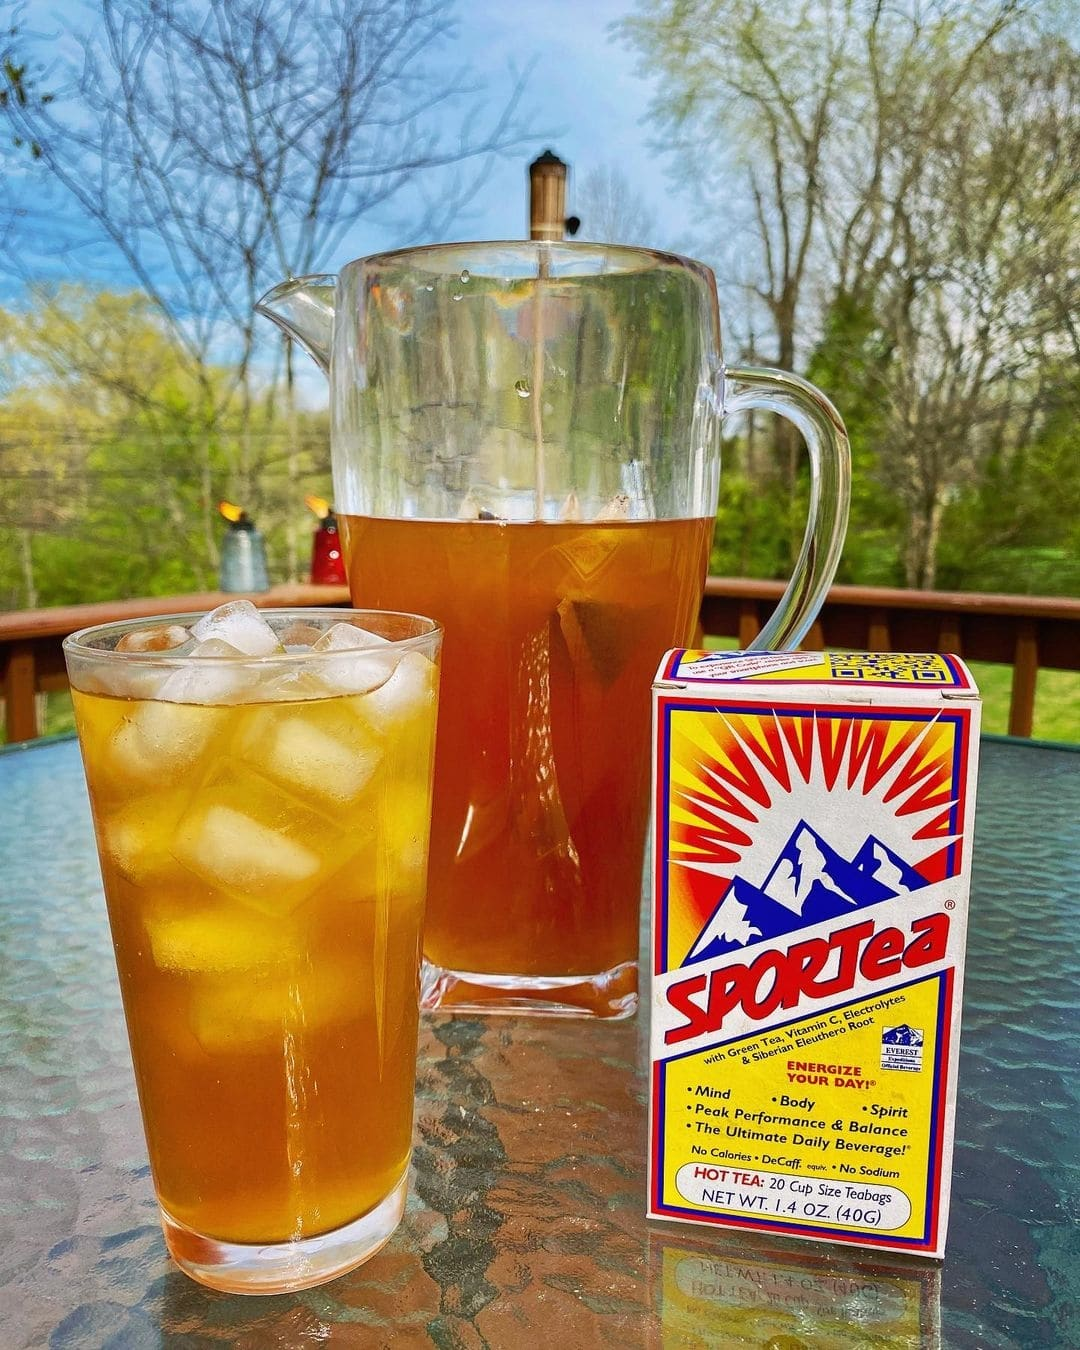 Image of a picture of ice cold SPORTea